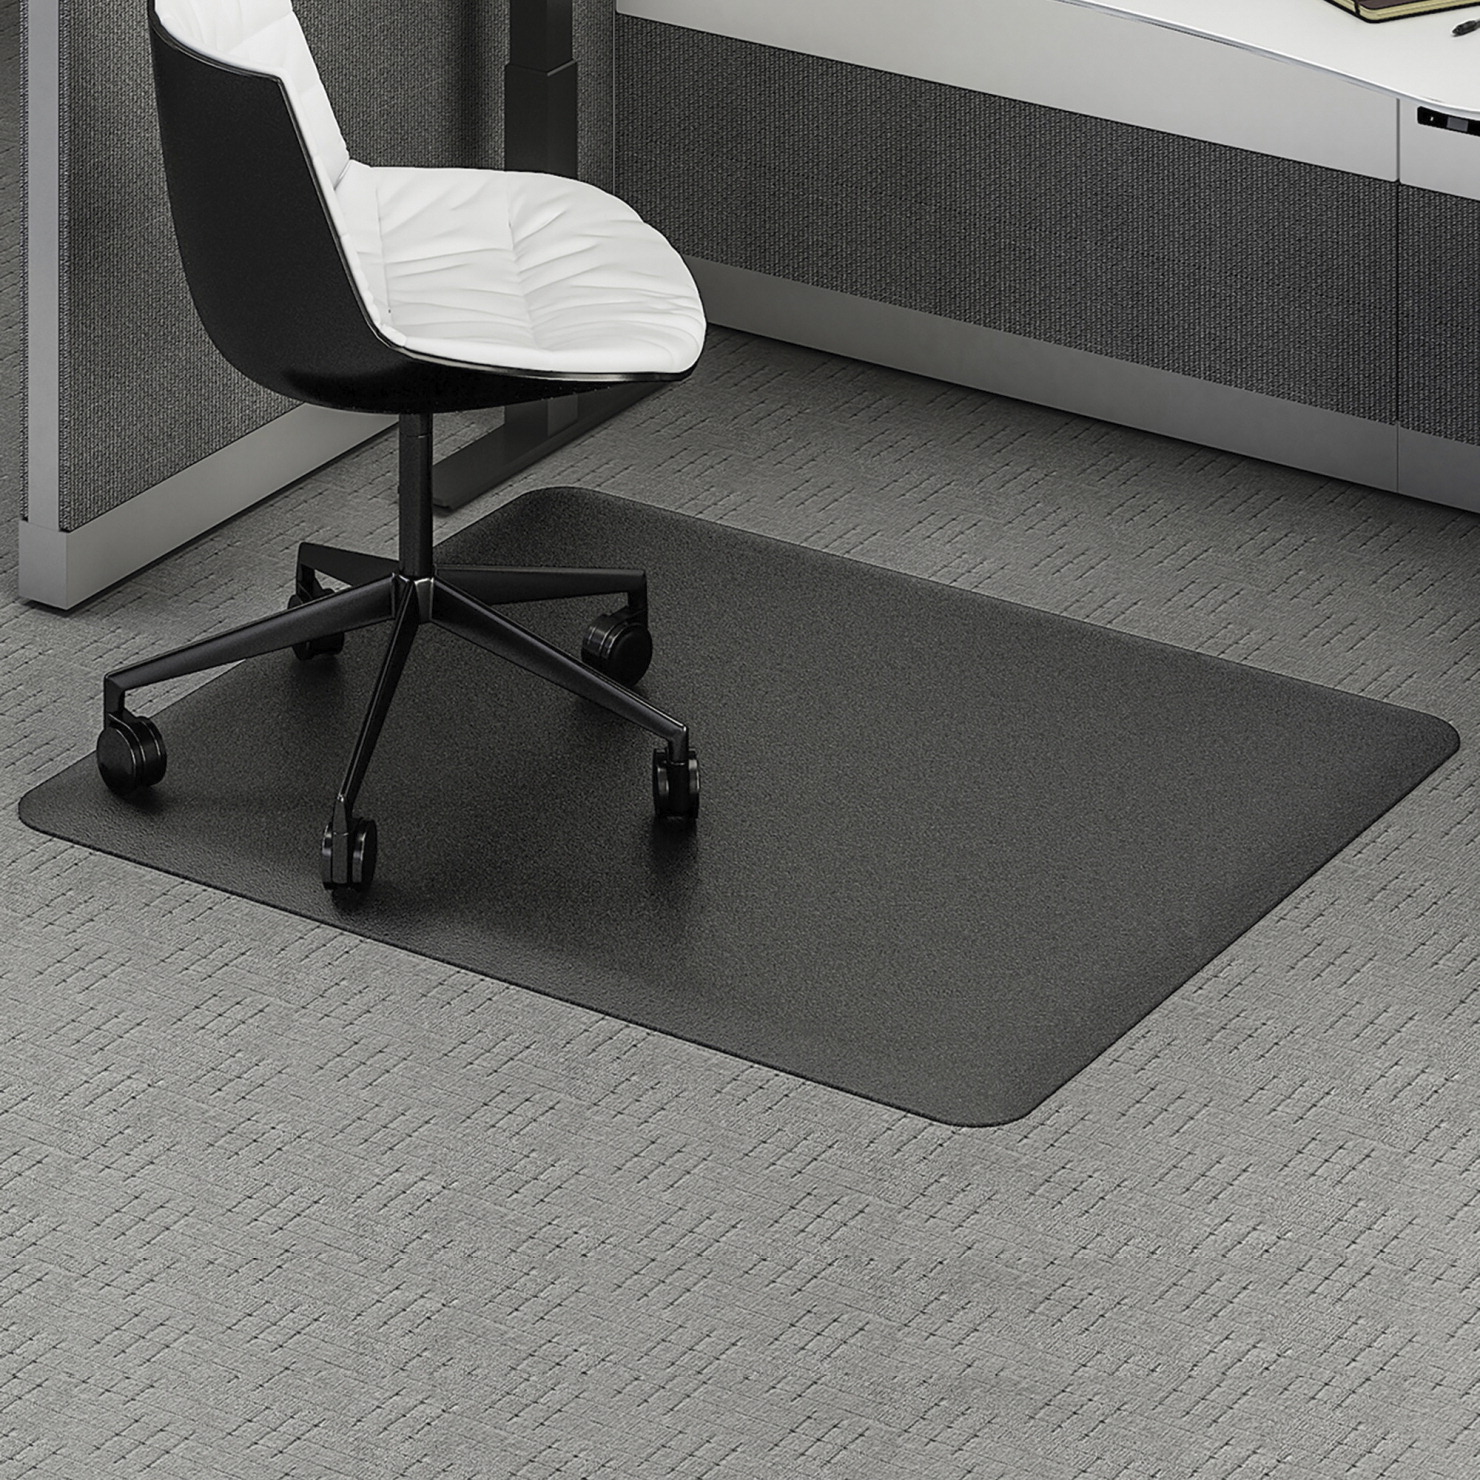 Deflect O Ergonomic Sit Stand Chairmat Black Soar Life Products